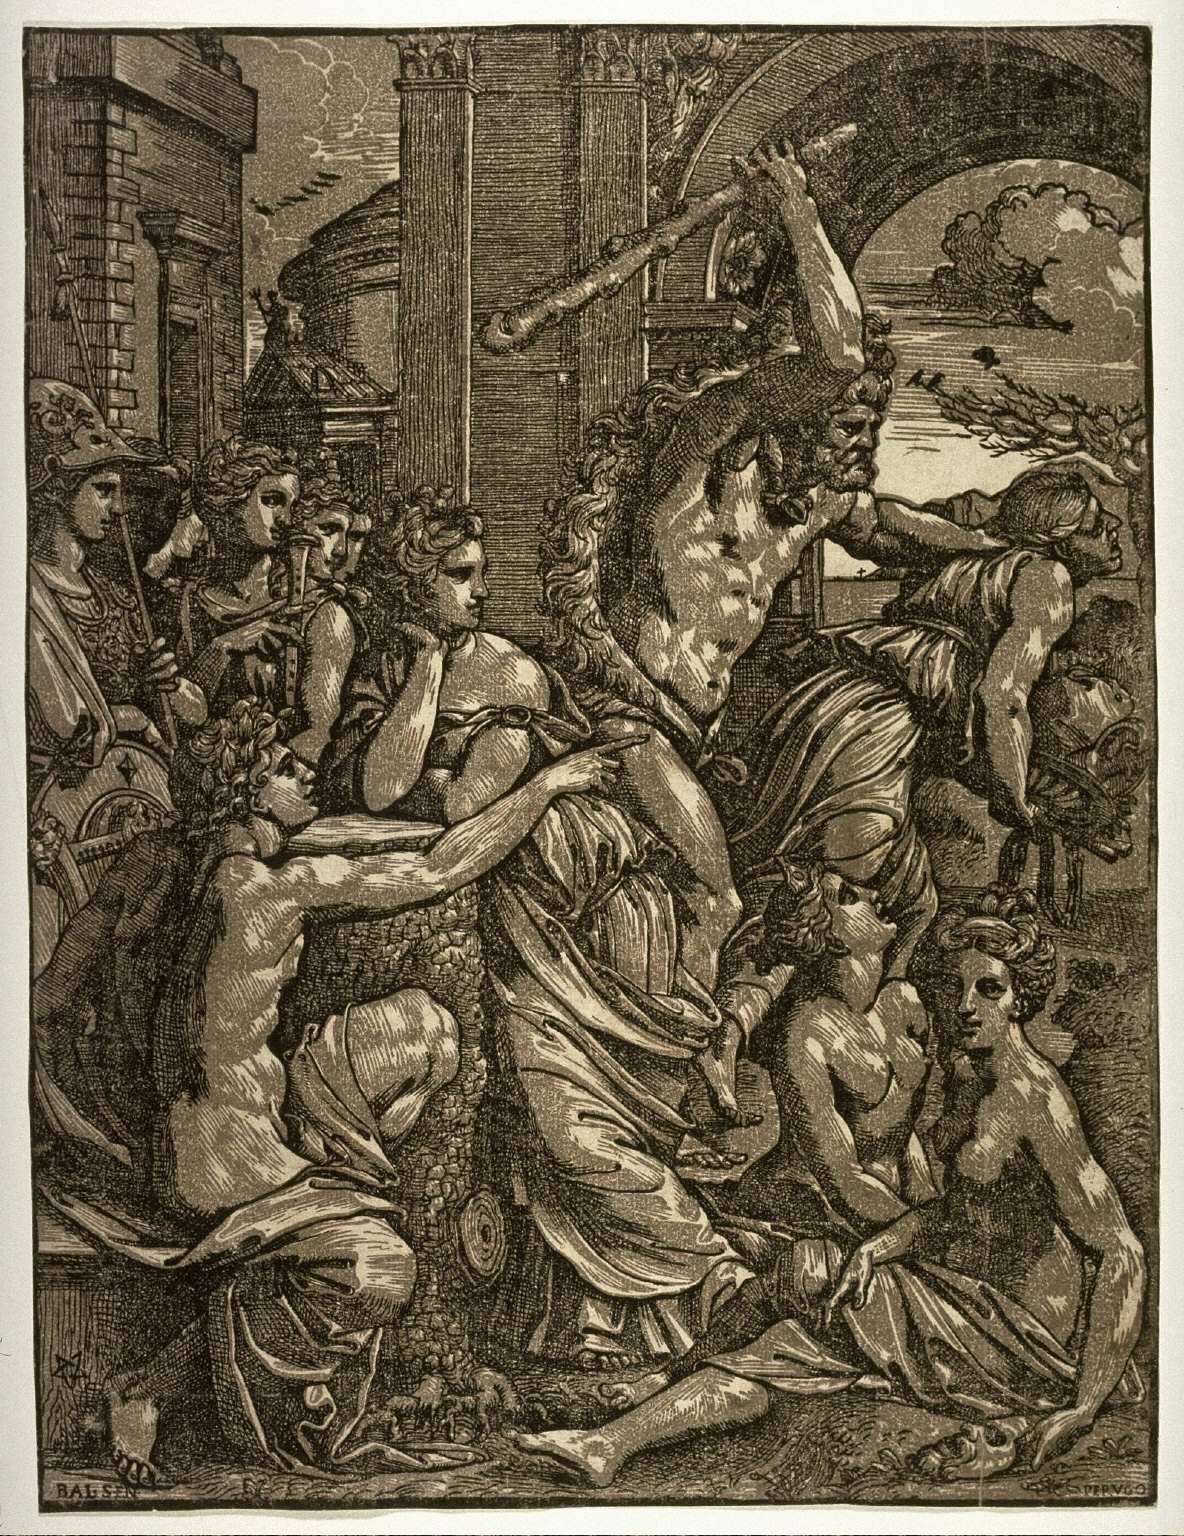 Envy Chased from the Temple of the Muses, after Baldassare Peruzzi